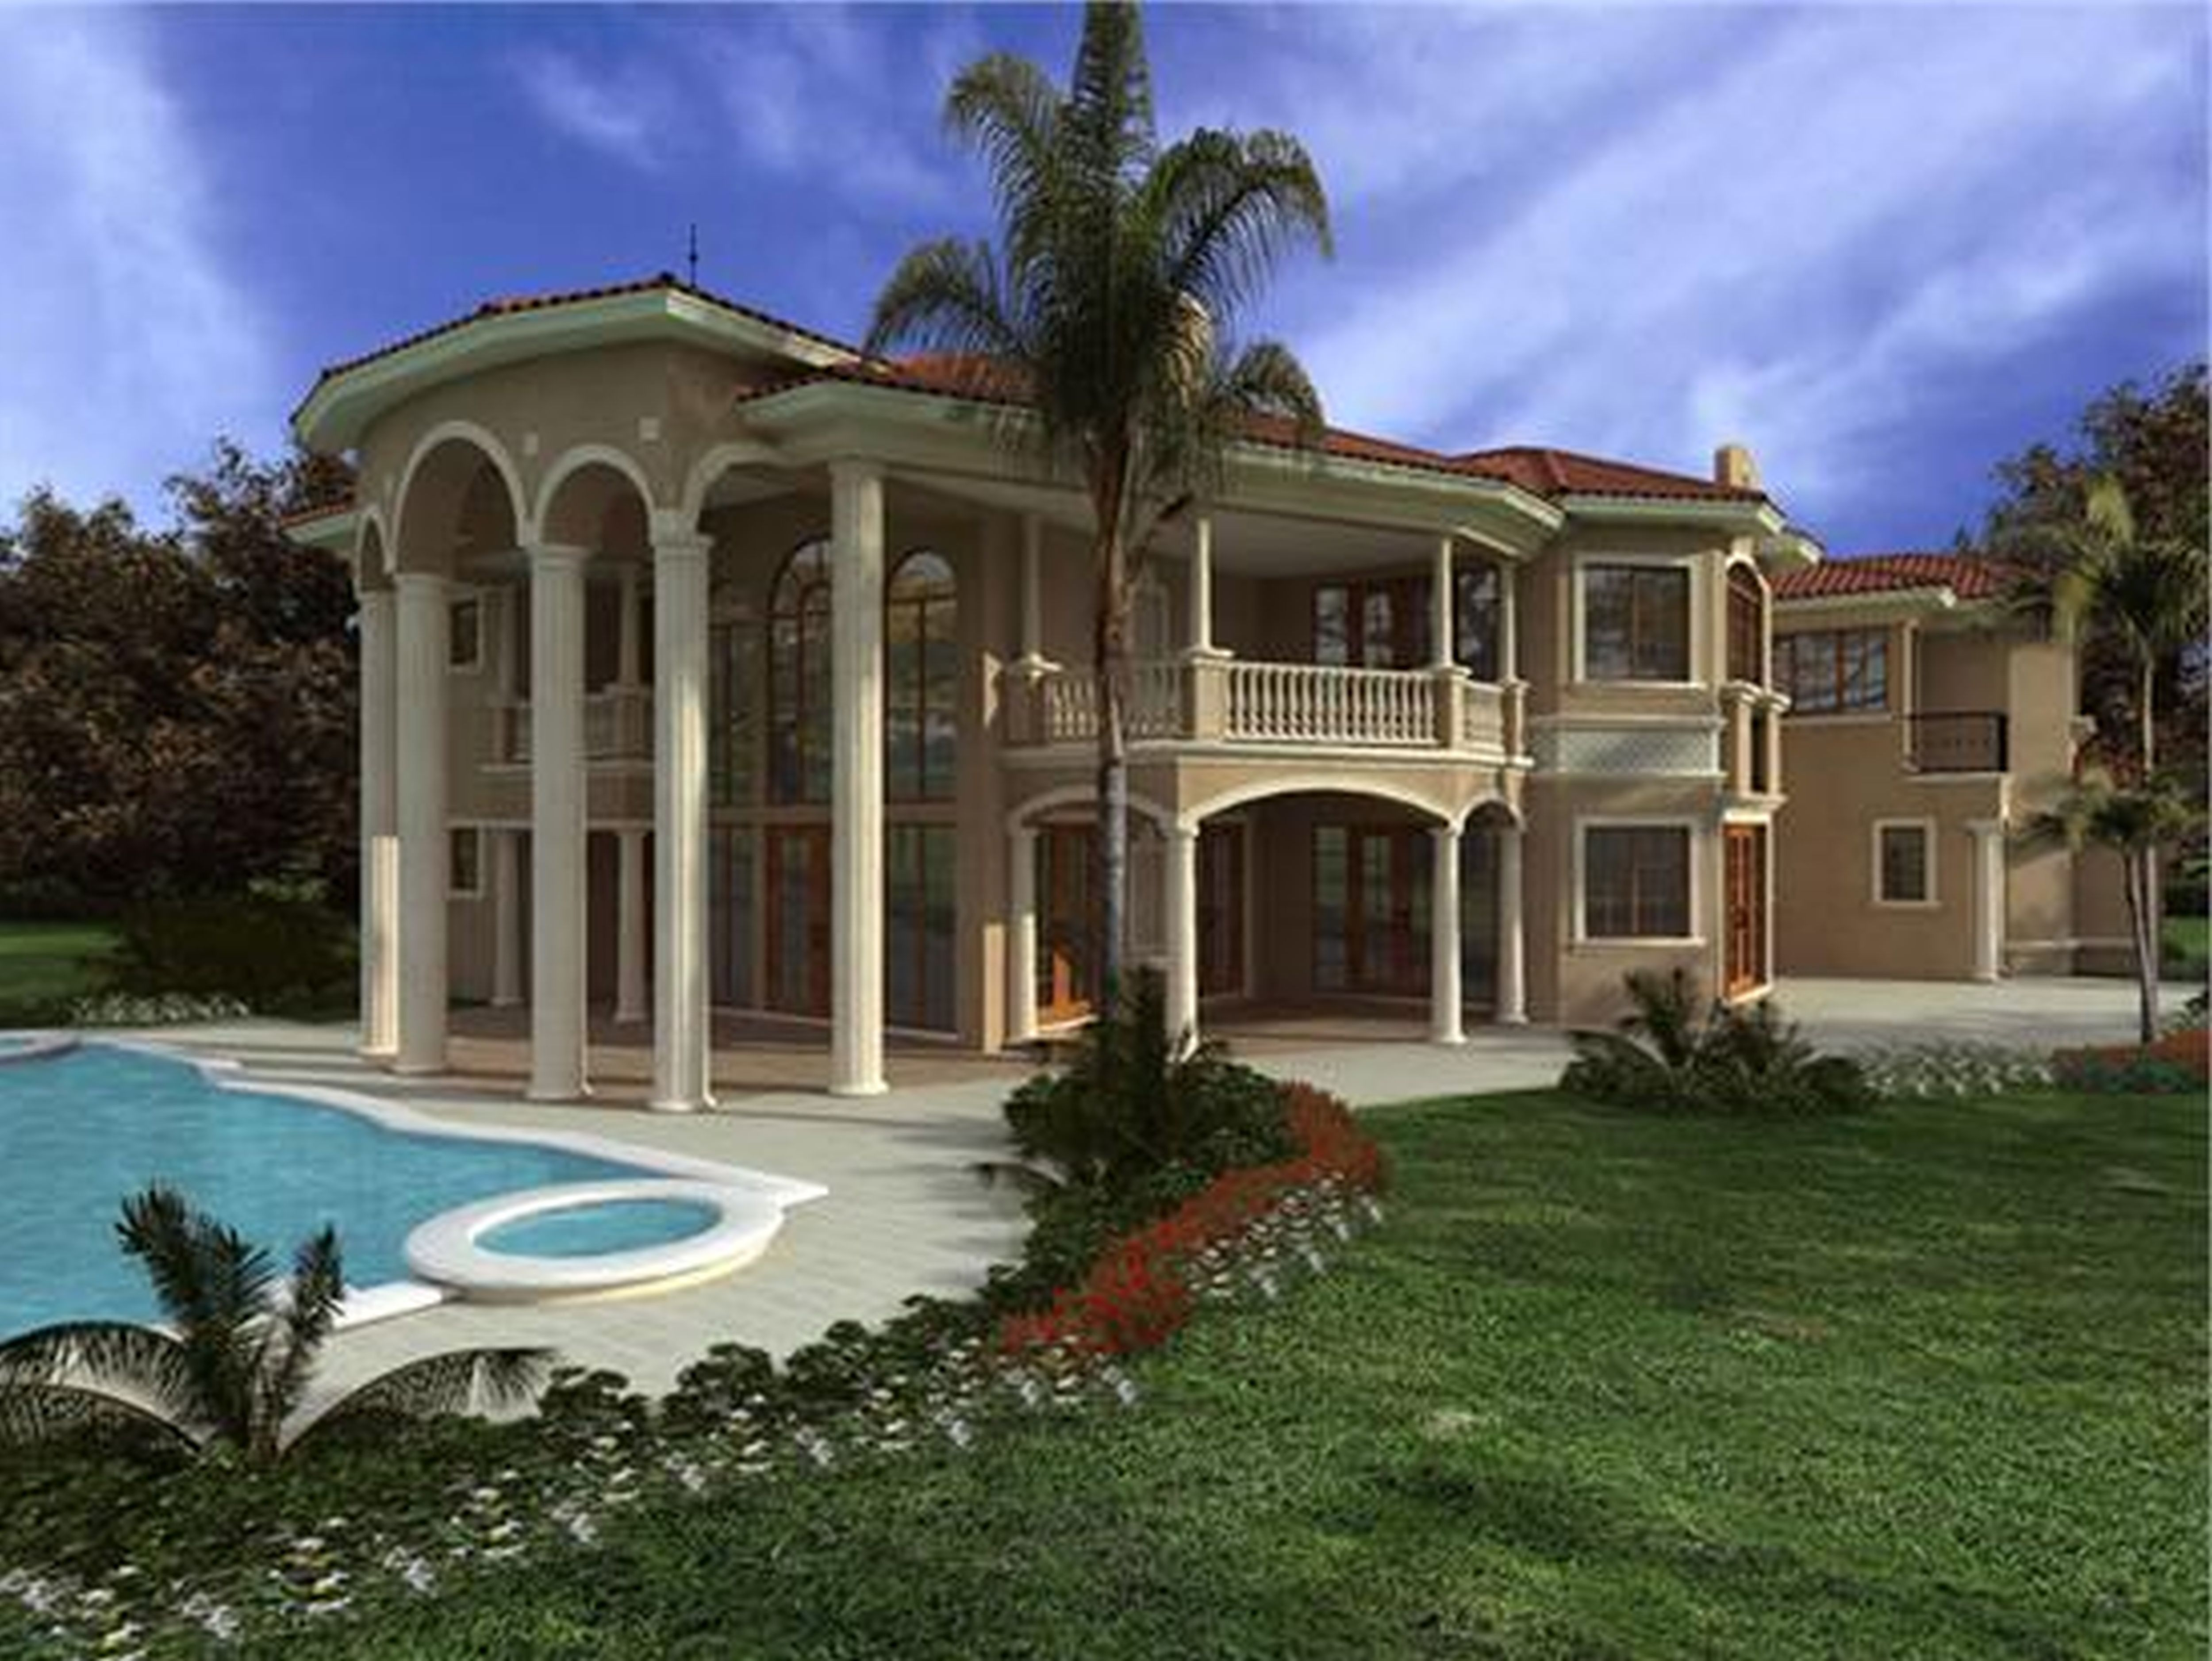 Most expensive fancy houses in the world house design fancy fancy dress modern house my house building a house big house mansion house house